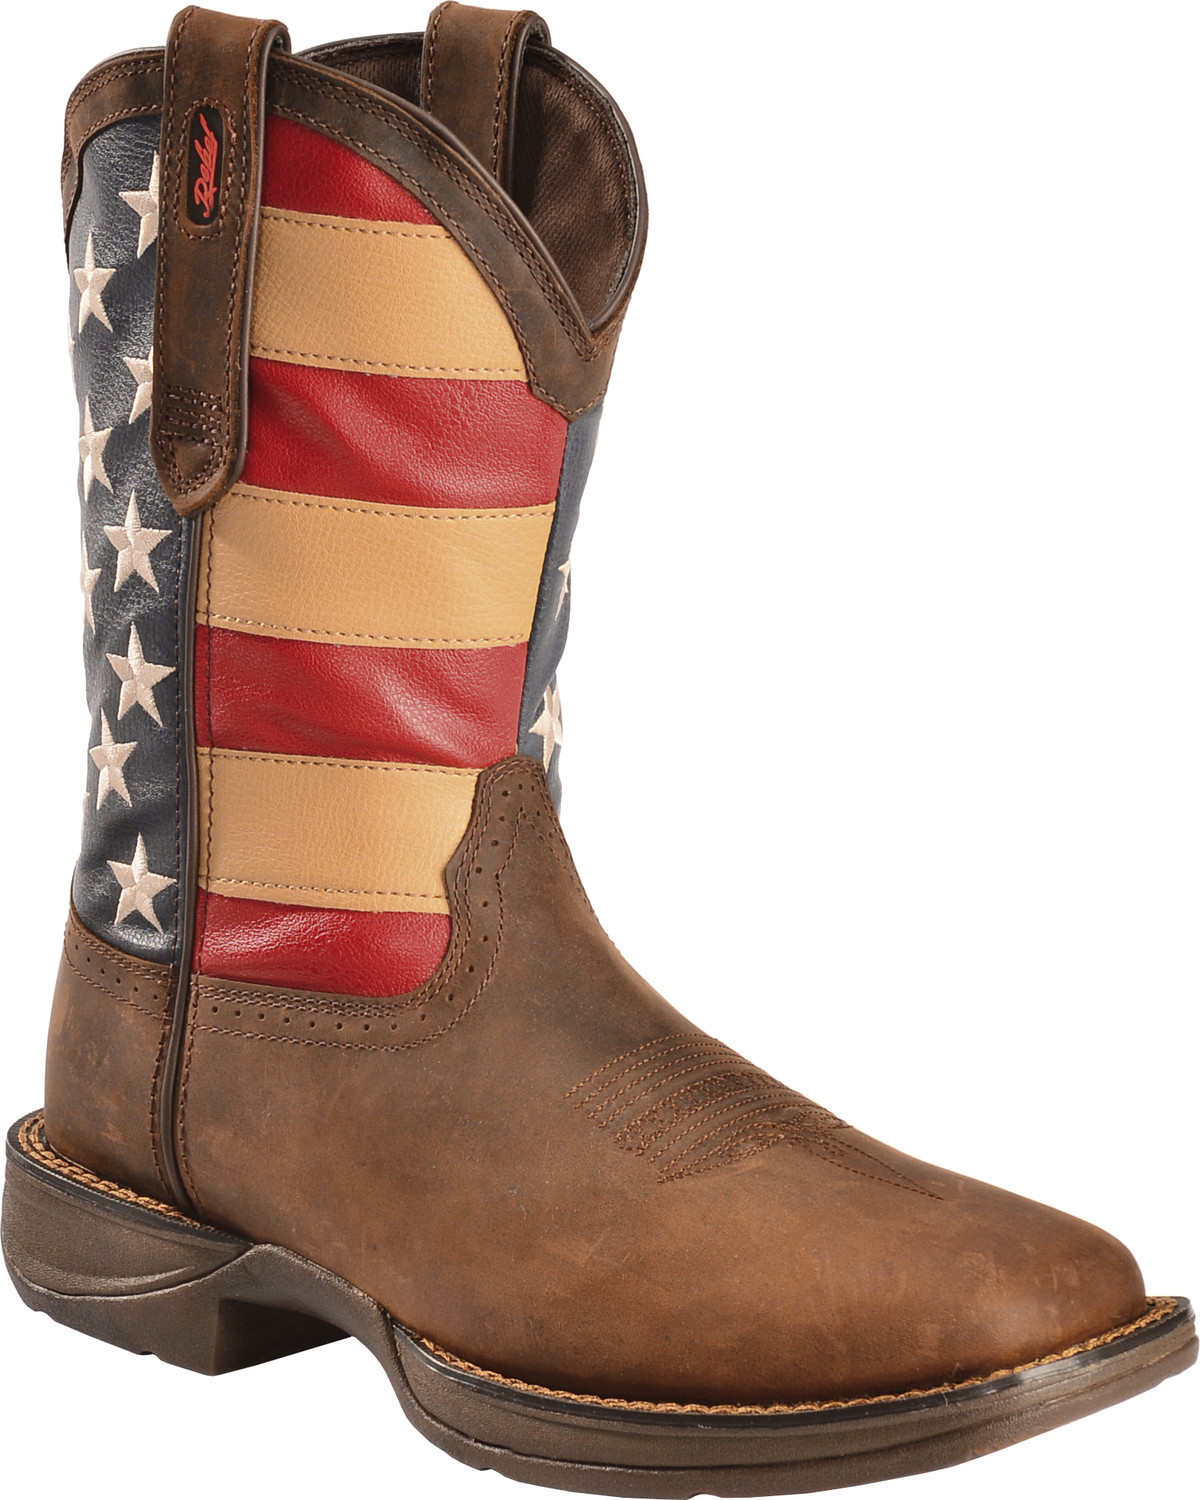 Durango Men S Patriotic Square Toe Western Boots Boot Barn